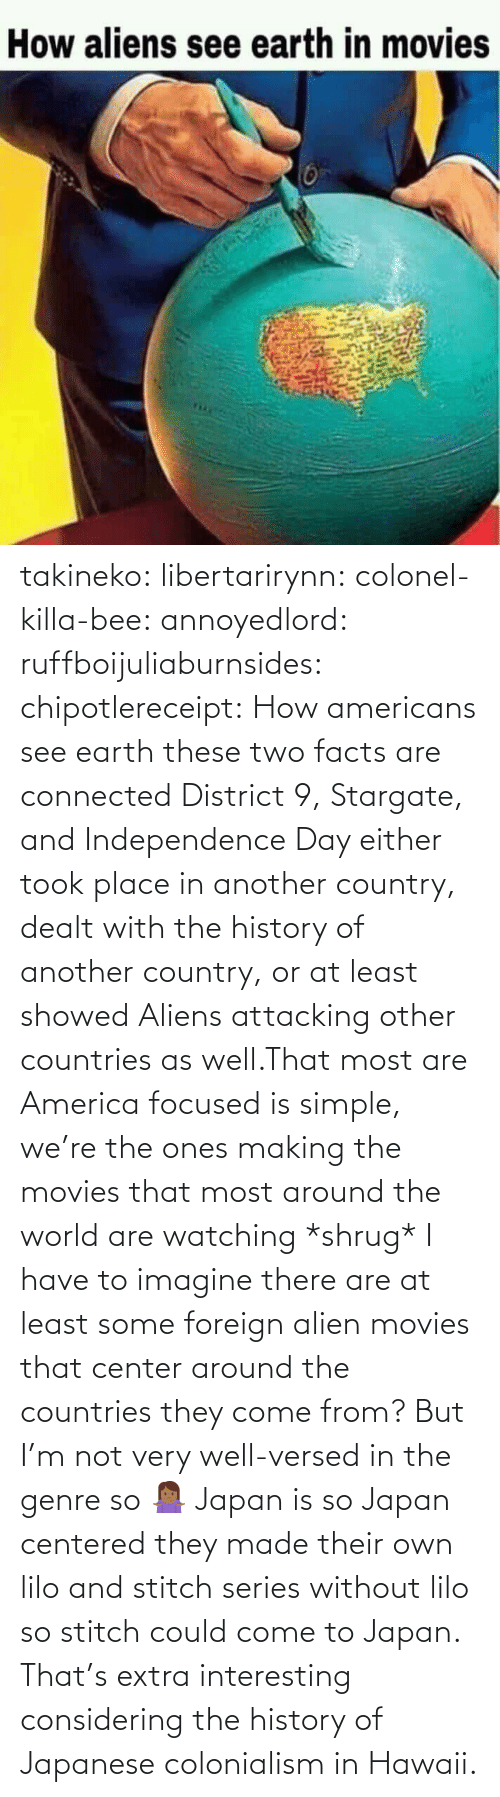 Facts: takineko:  libertarirynn:  colonel-killa-bee:  annoyedlord: ruffboijuliaburnsides:  chipotlereceipt: How americans see earth these two facts are connected     District 9, Stargate, and Independence Day either took place in another country, dealt with the history of another country, or at least showed Aliens attacking other countries as well.That most are America focused is simple, we're the ones making the movies that most around the world are watching *shrug*   I have to imagine there are at least some foreign alien movies that center around the countries they come from? But I'm not very well-versed in the genre so 🤷🏾‍♀️   Japan is so Japan centered they made their own lilo and stitch series without lilo so stitch could come to Japan.    That's extra interesting considering the history of Japanese colonialism in Hawaii.